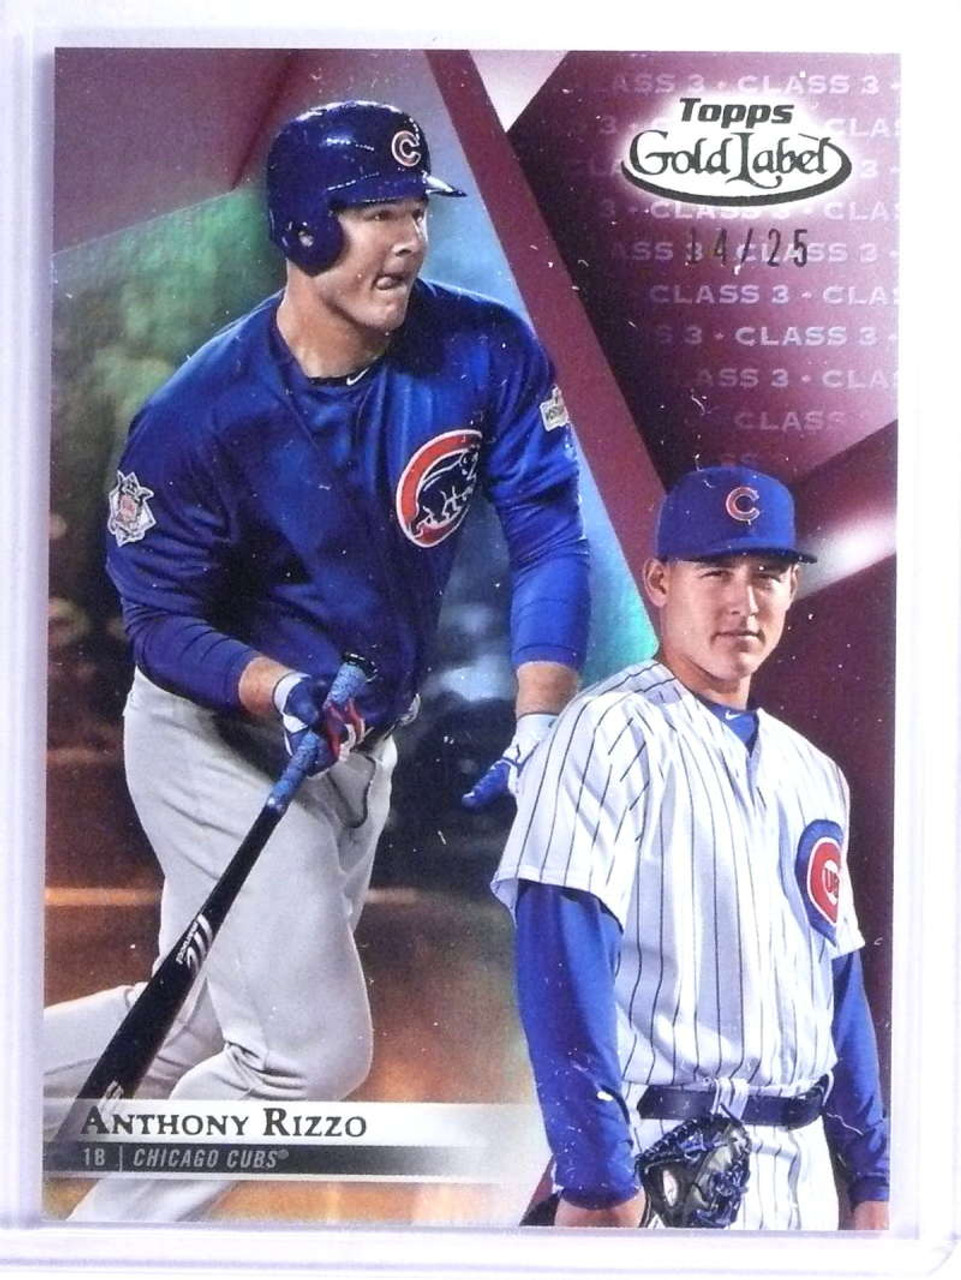 2018 Topps Gold Label Anthony Rizzo Class 3 D1425 Chicago Cubs 75077